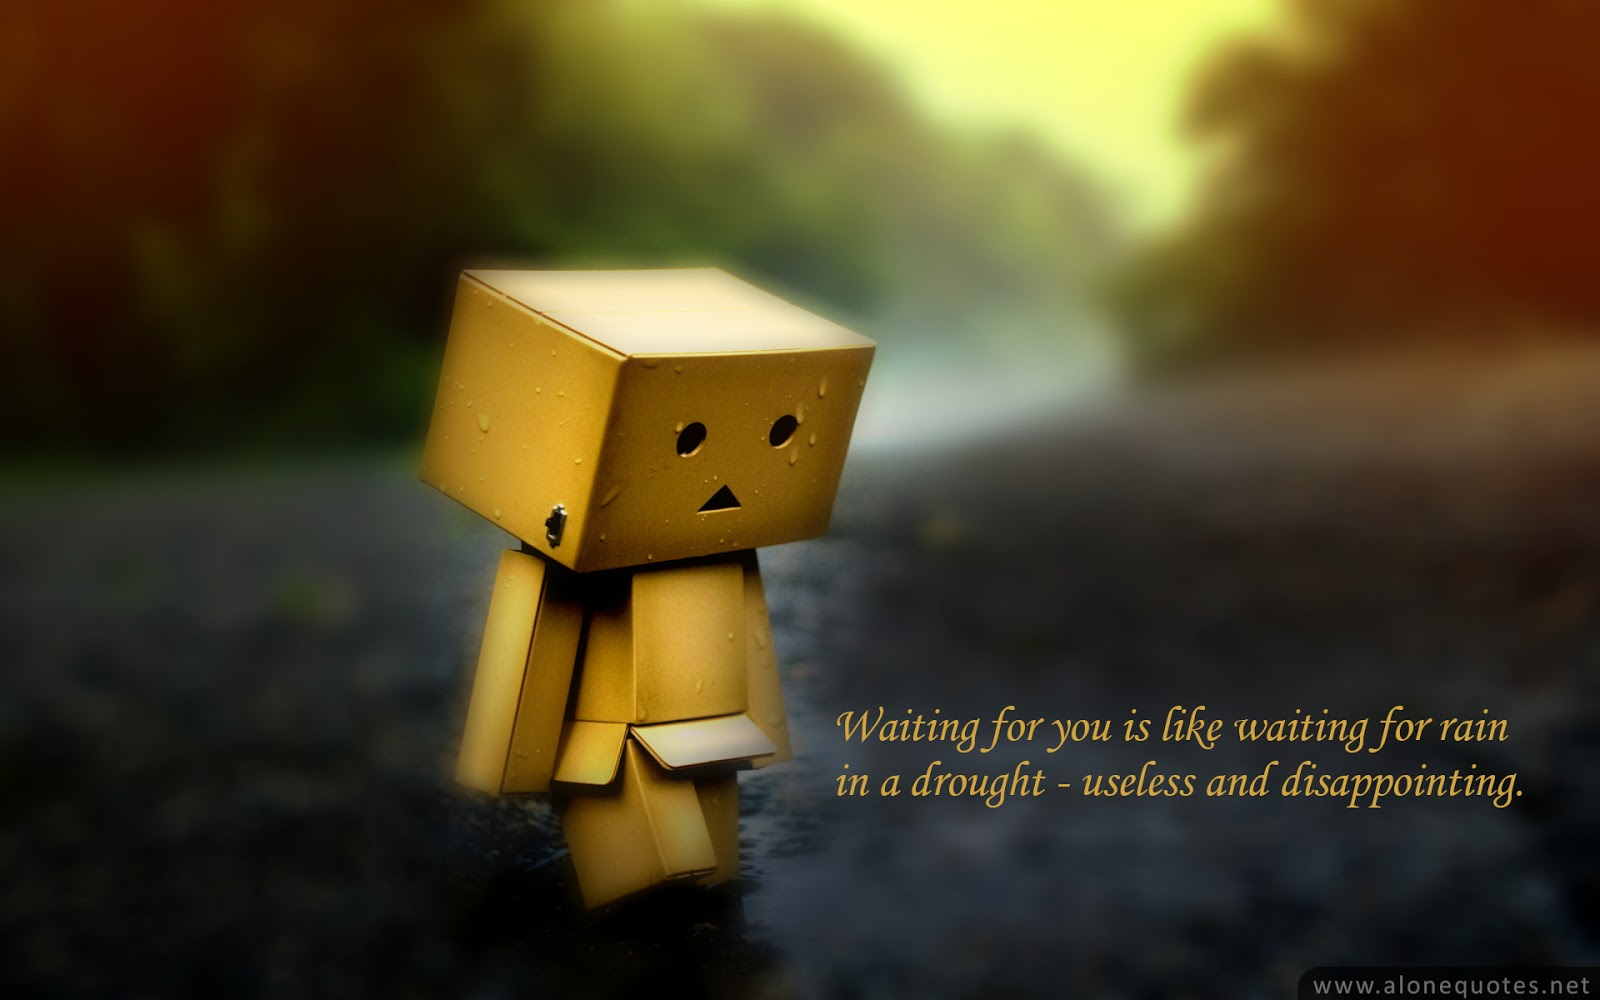 sad alone love wallpapers with quotes 2013-alone quotes